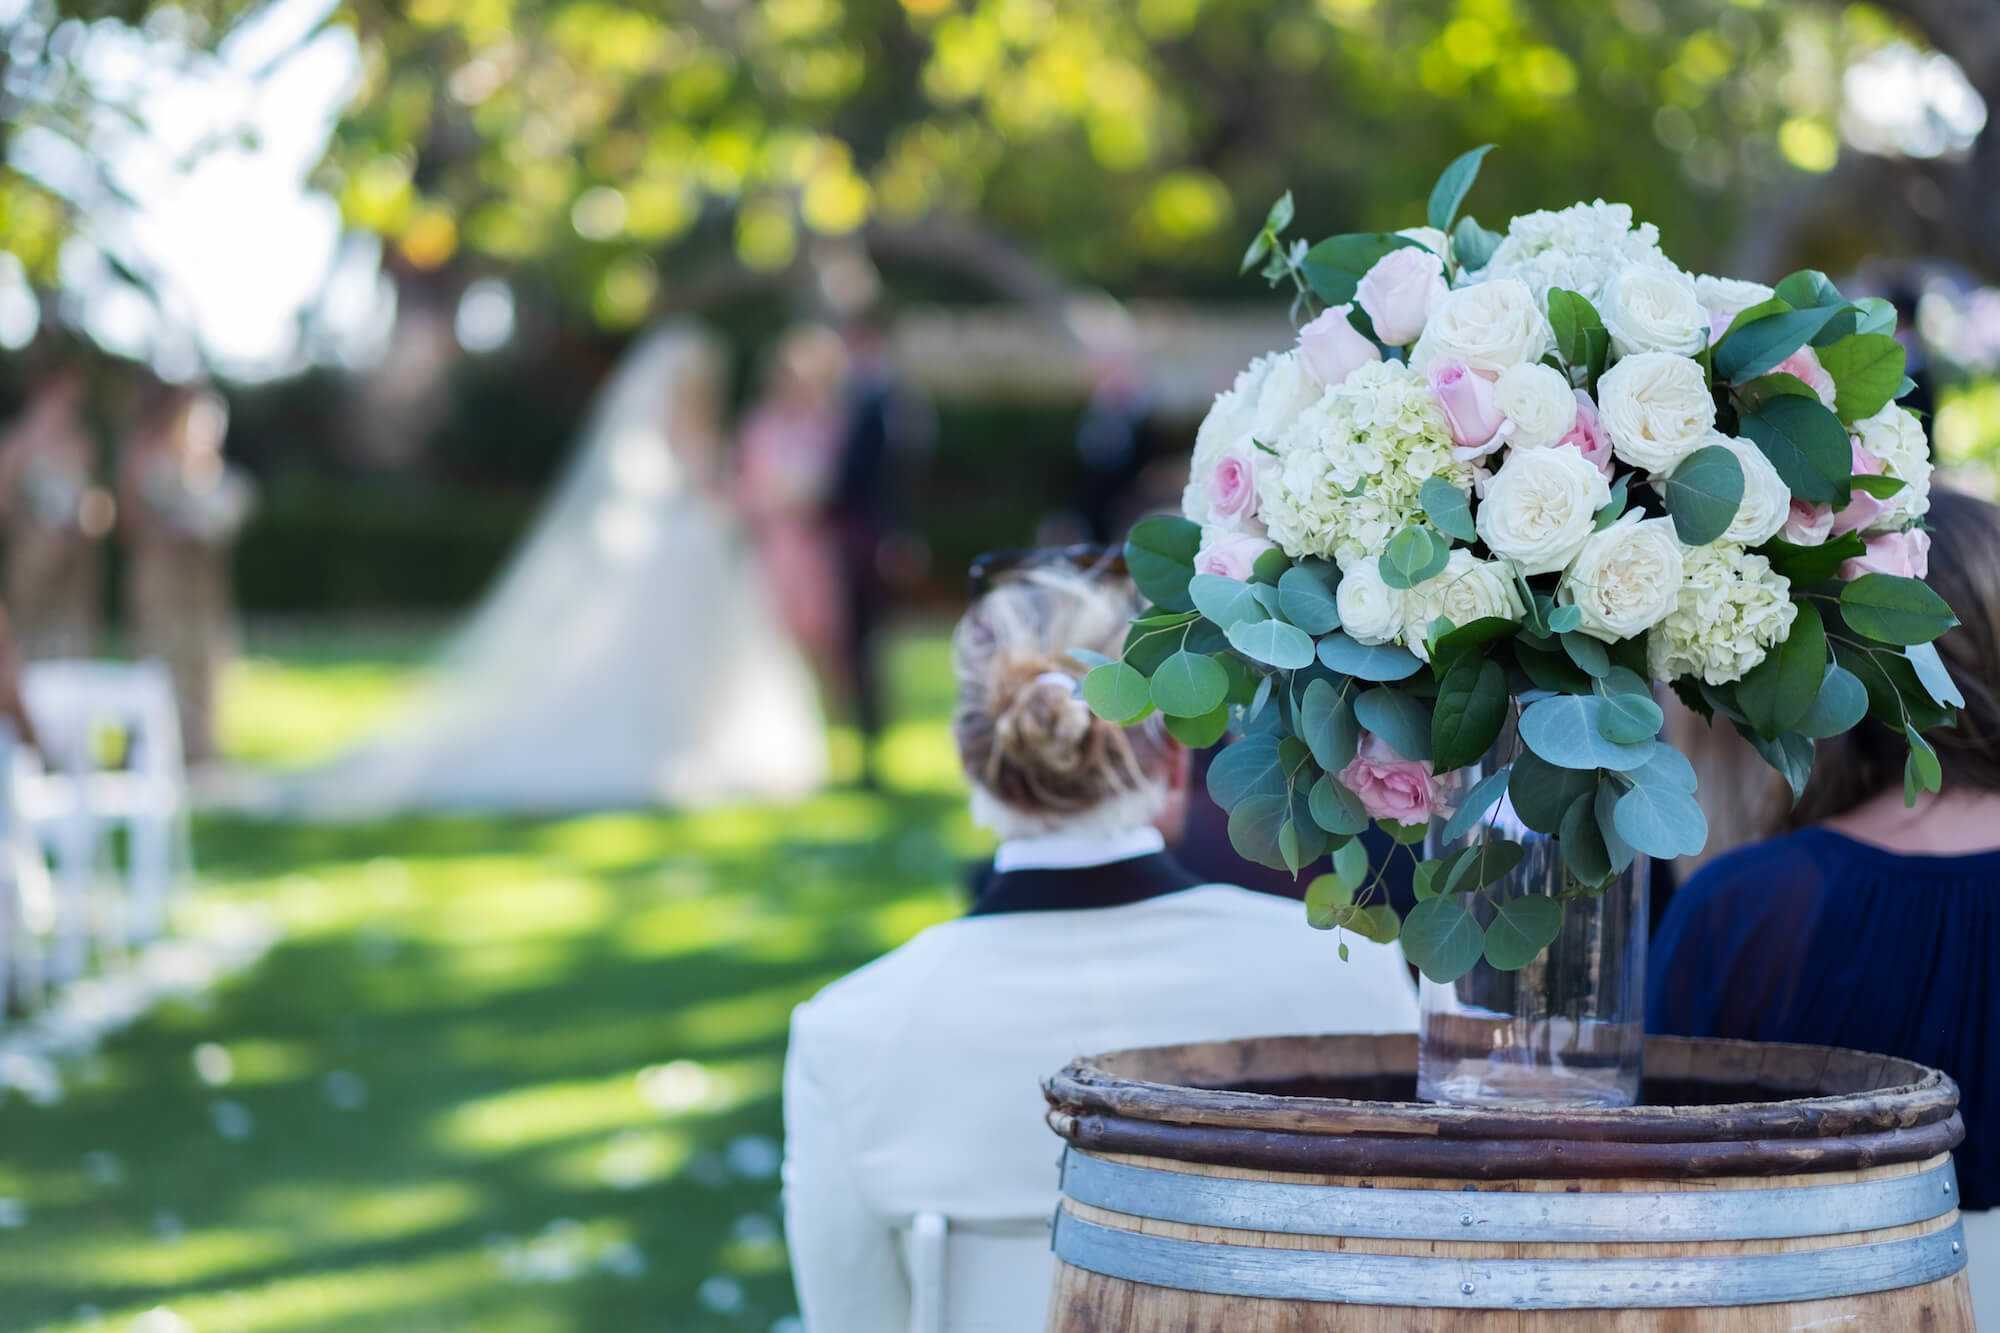 Rustic Wedding With Flower Bouquet In Vase On Barrel